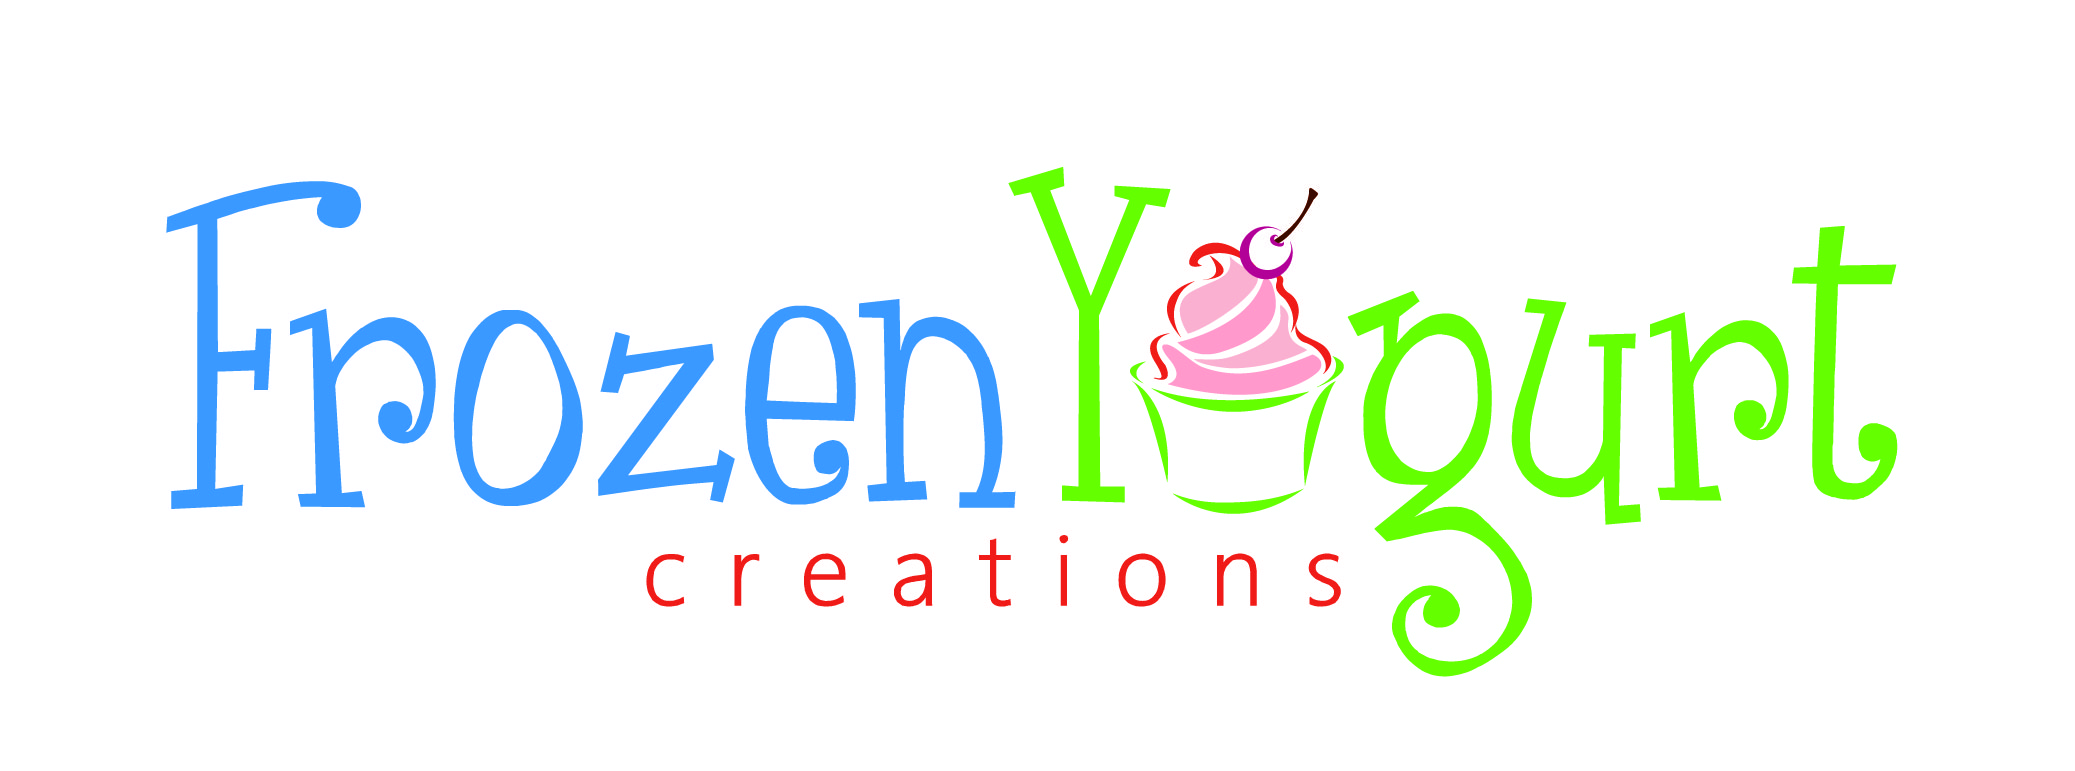 Bruce M. – Frozen Yogurt Creations